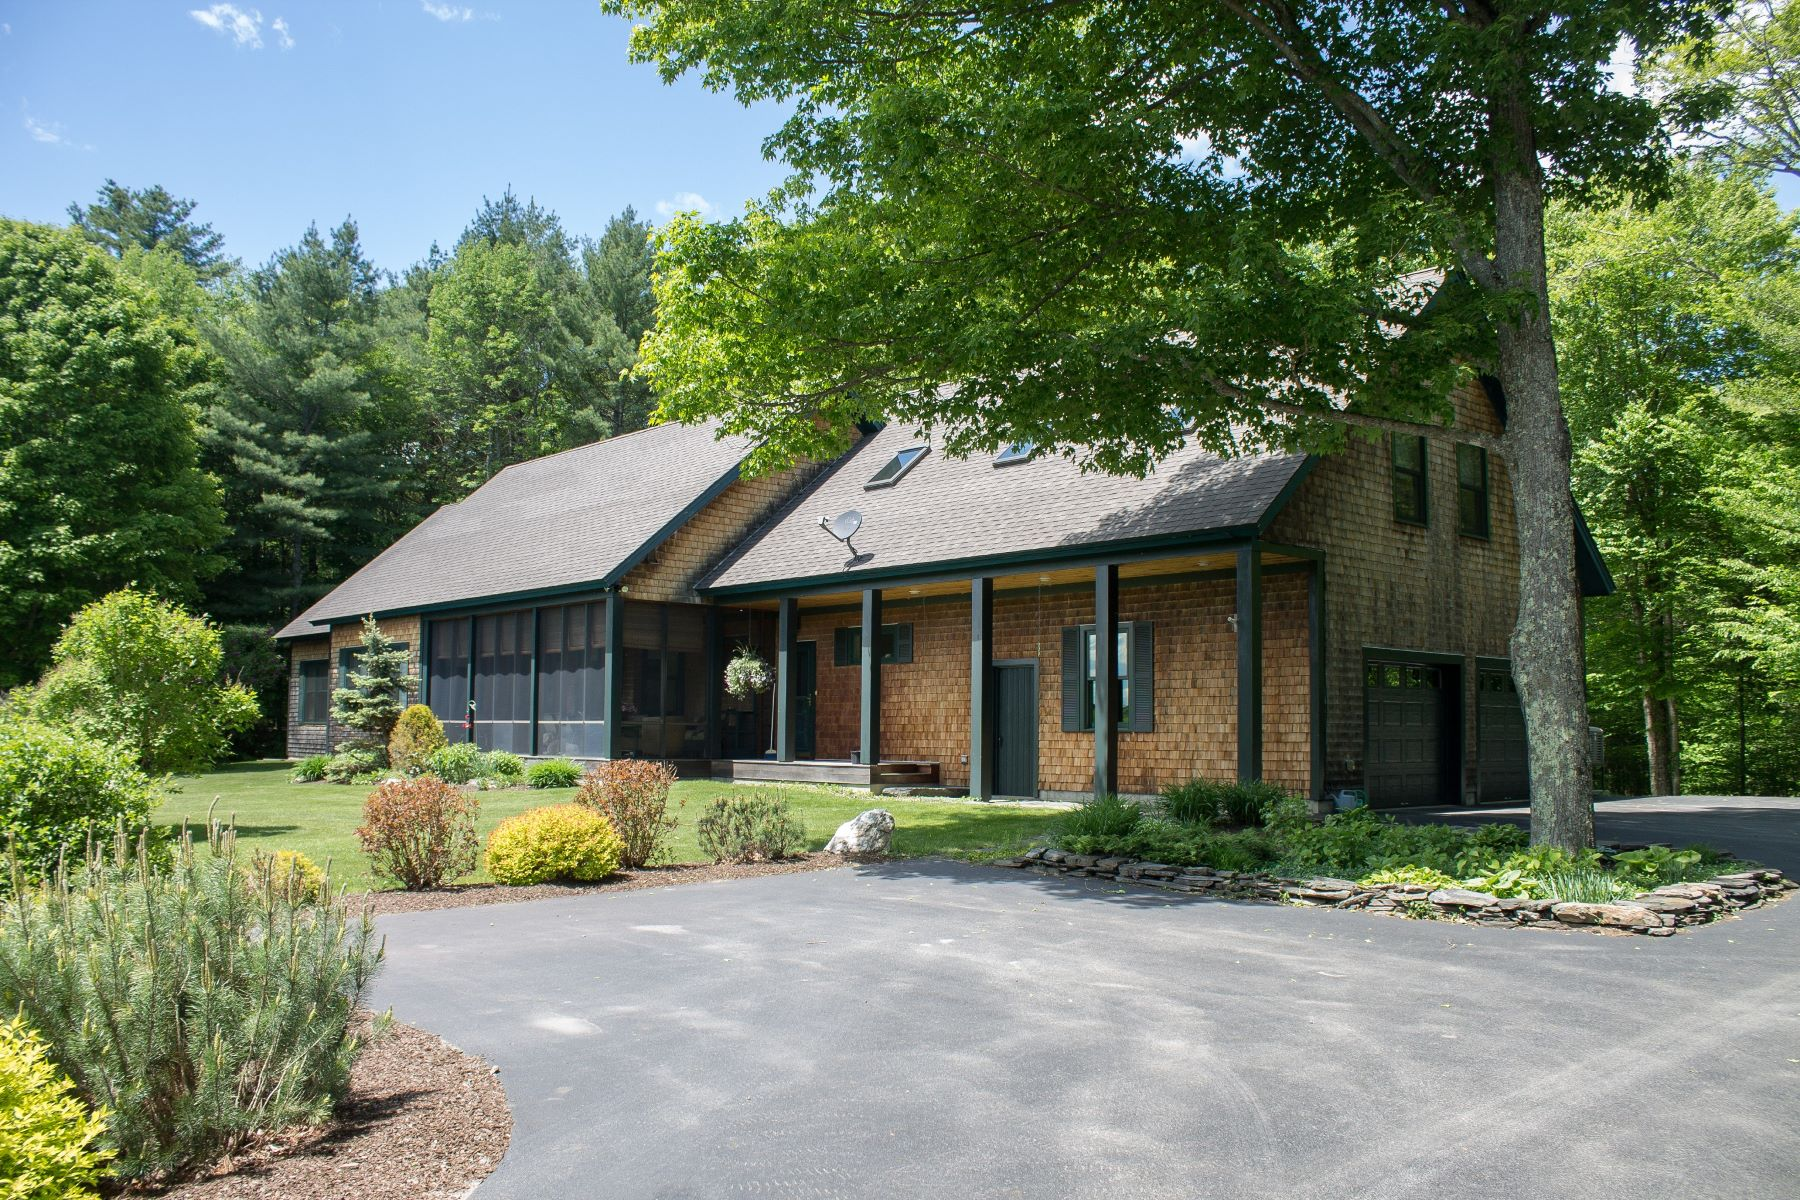 Single Family Homes for Sale at Three Bedroom Contemporary in Brookfield 661 Kibbee Rd Brookfield, Vermont 05036 United States